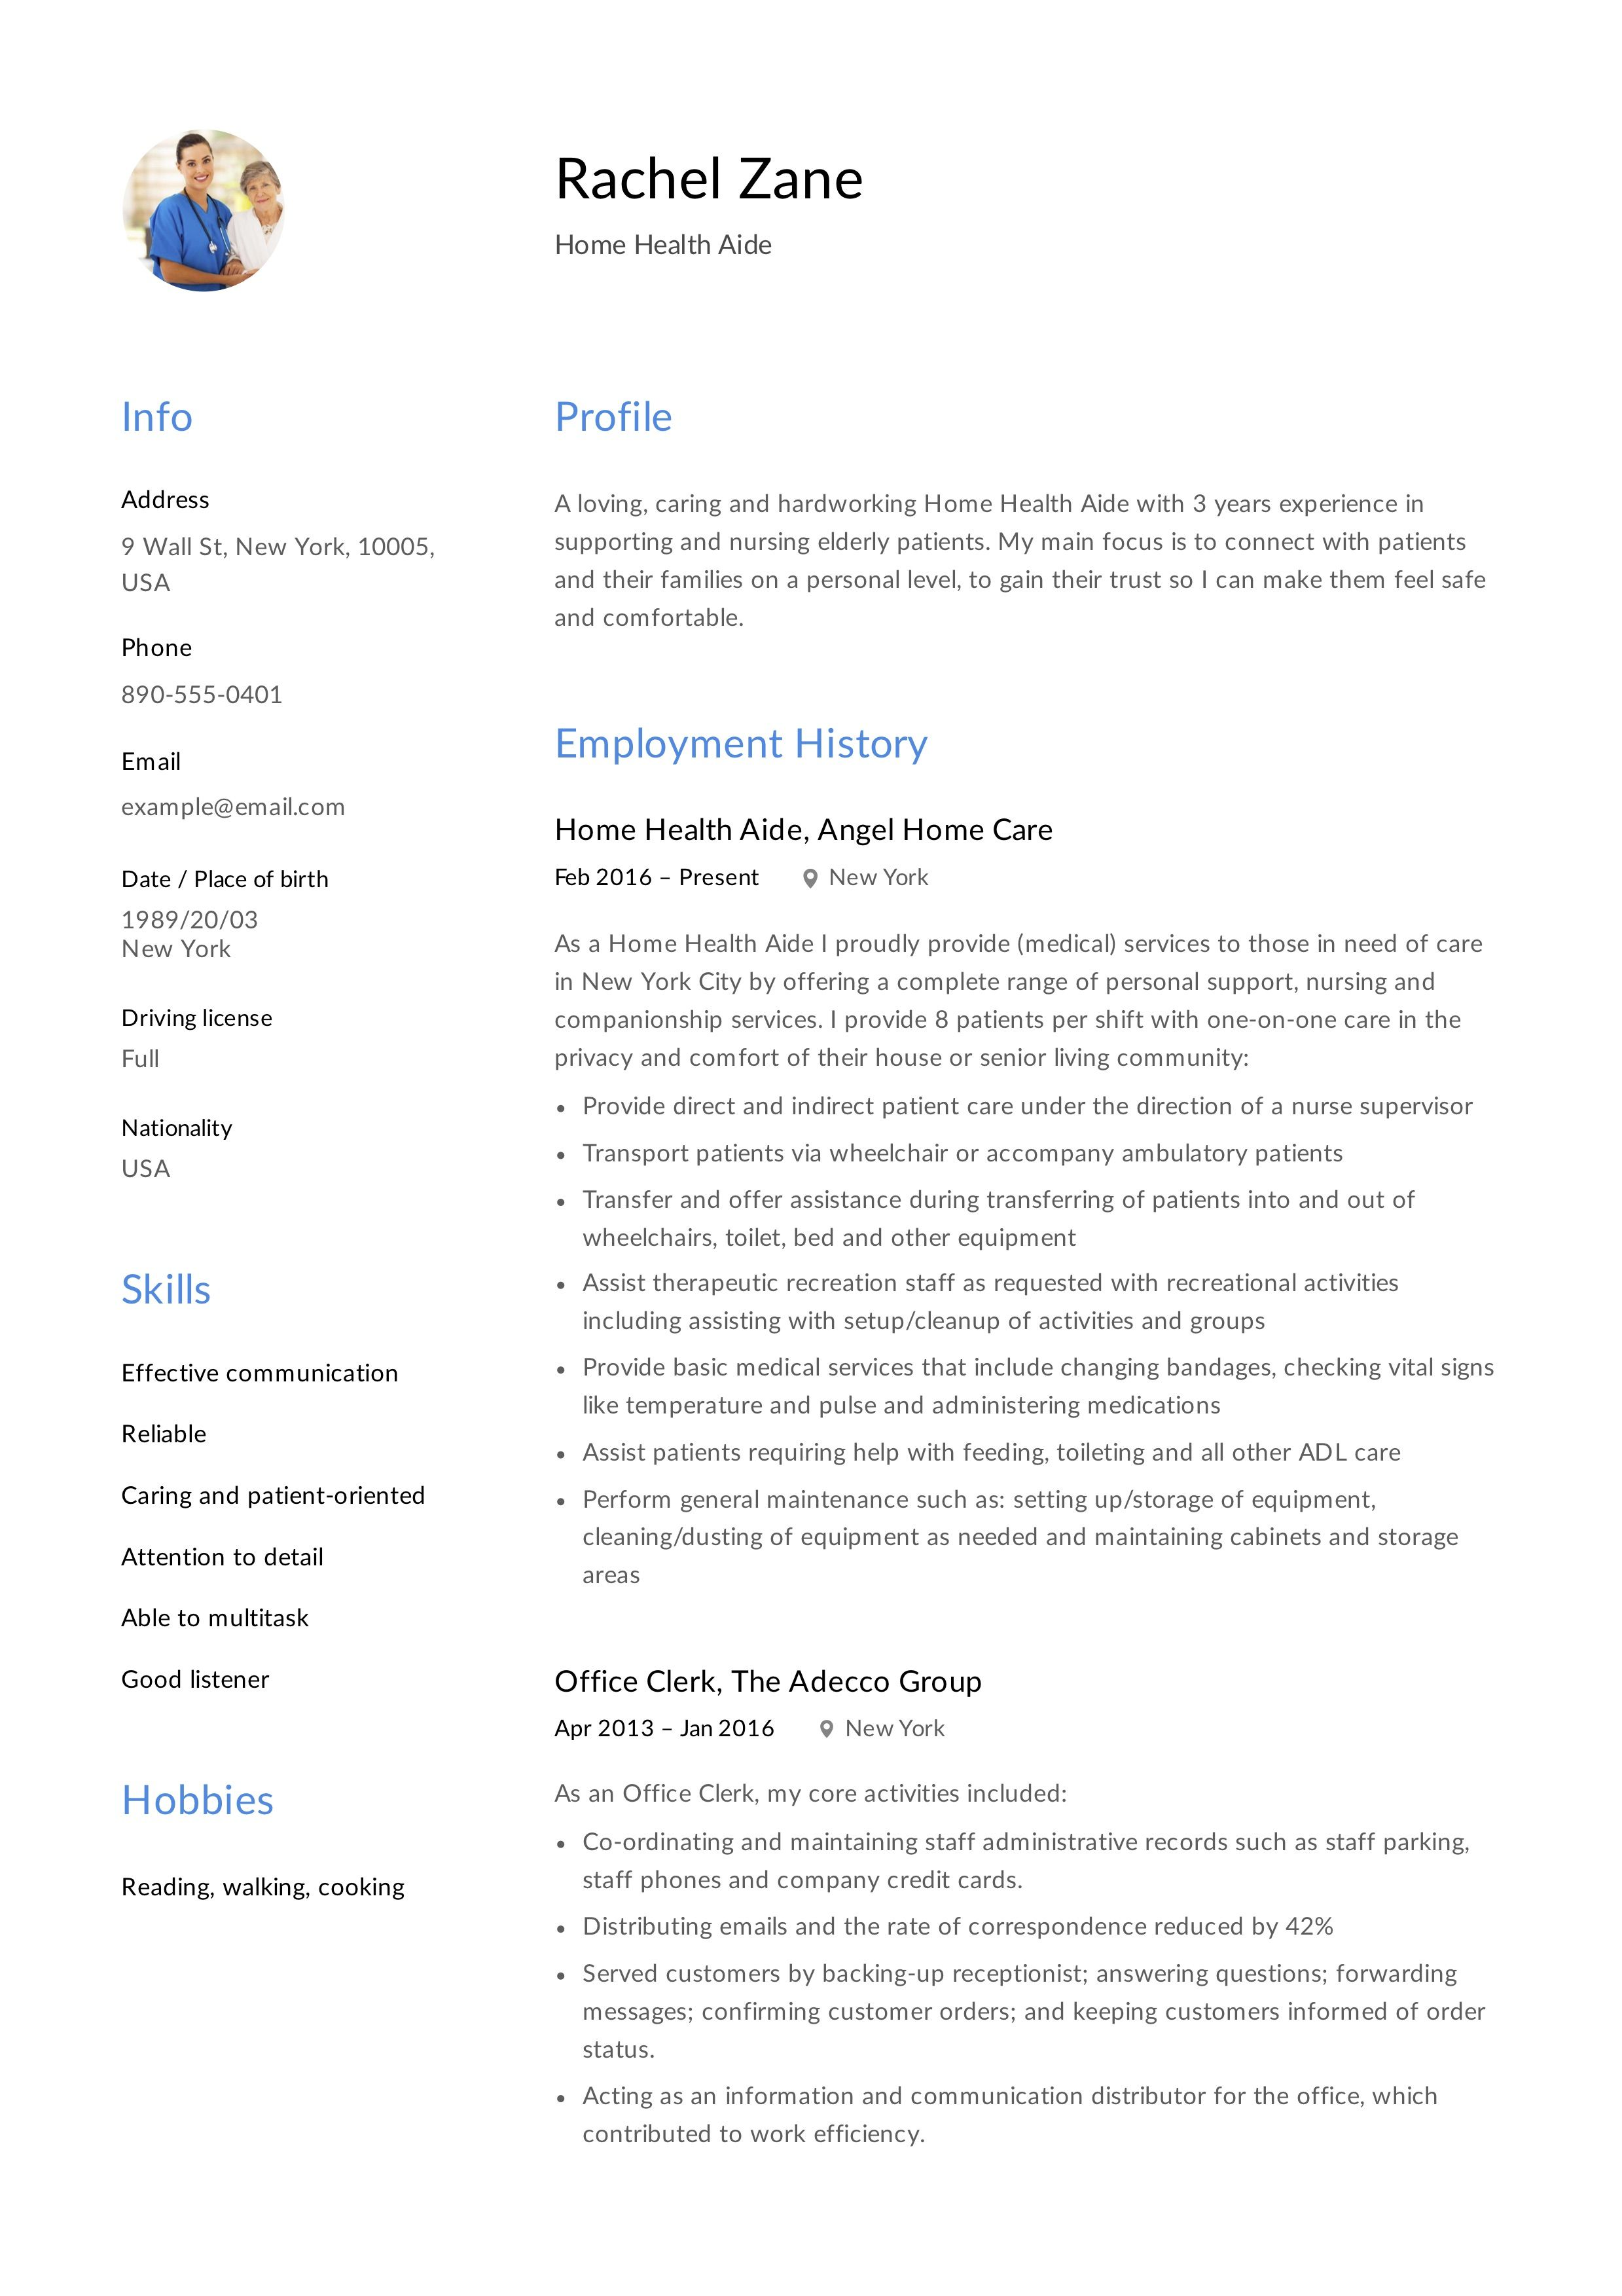 Home health aide resume sample writing guide in 2020